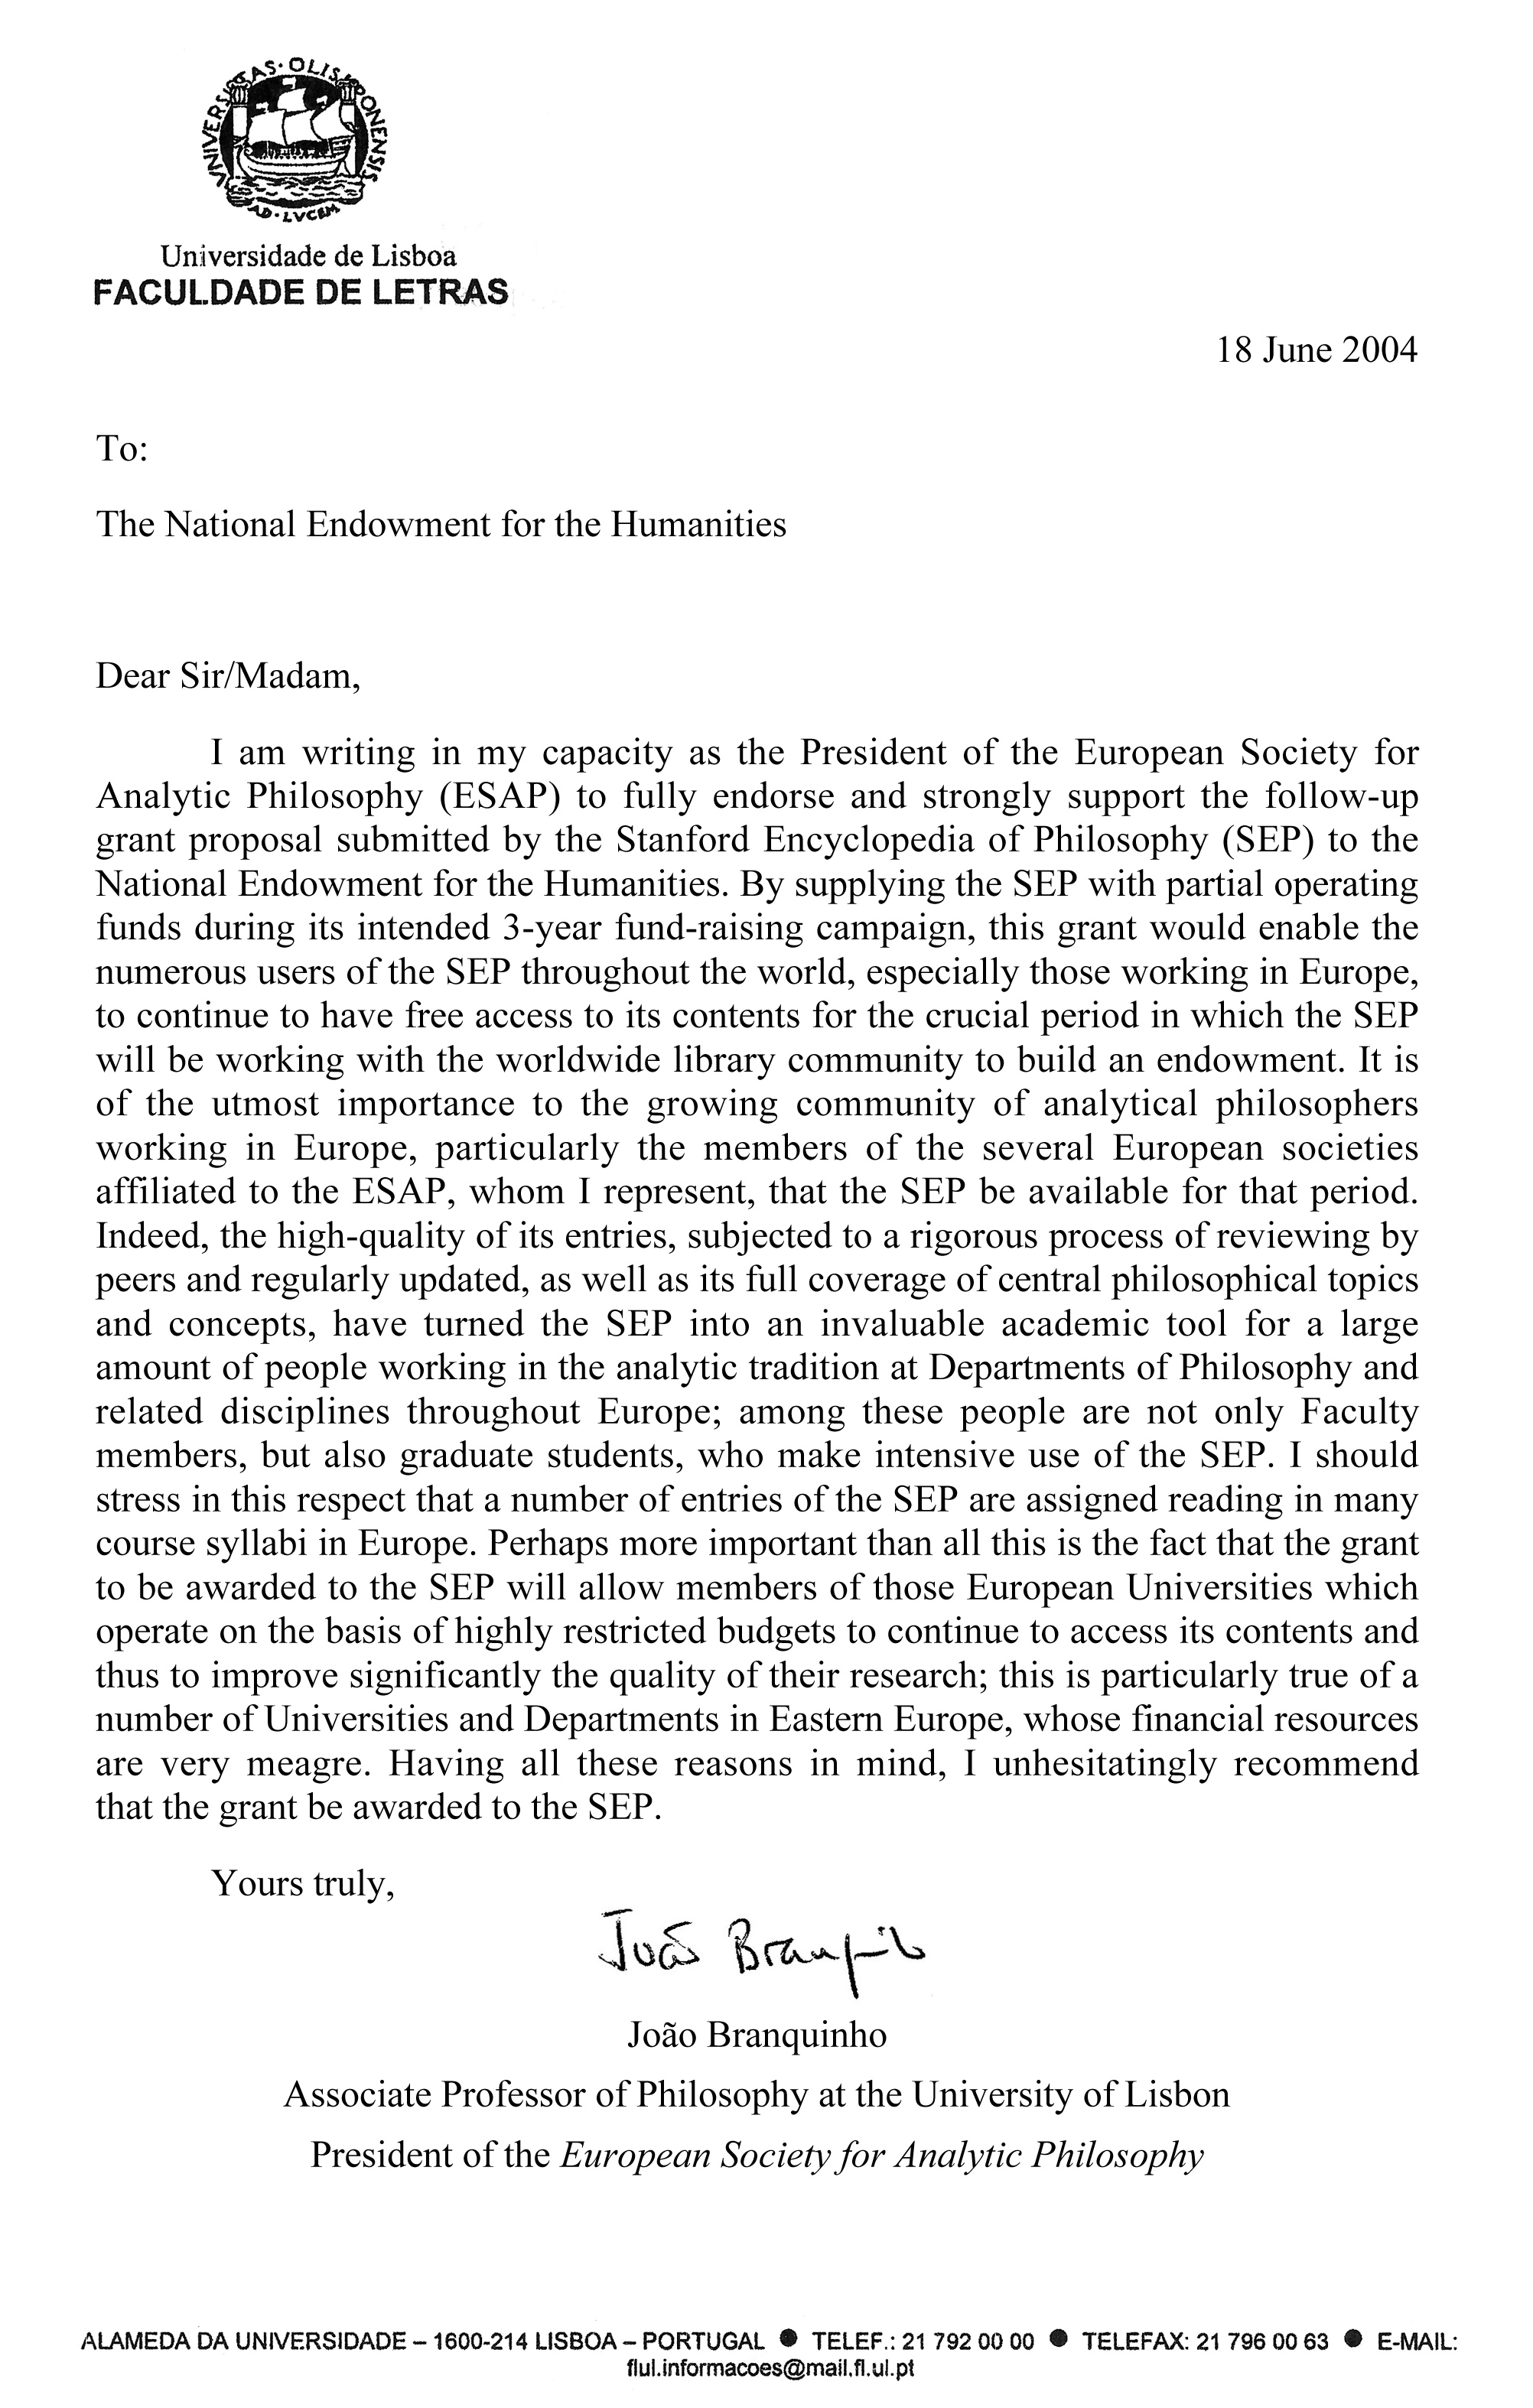 ESAP's Letter In Support Of NEH Grant